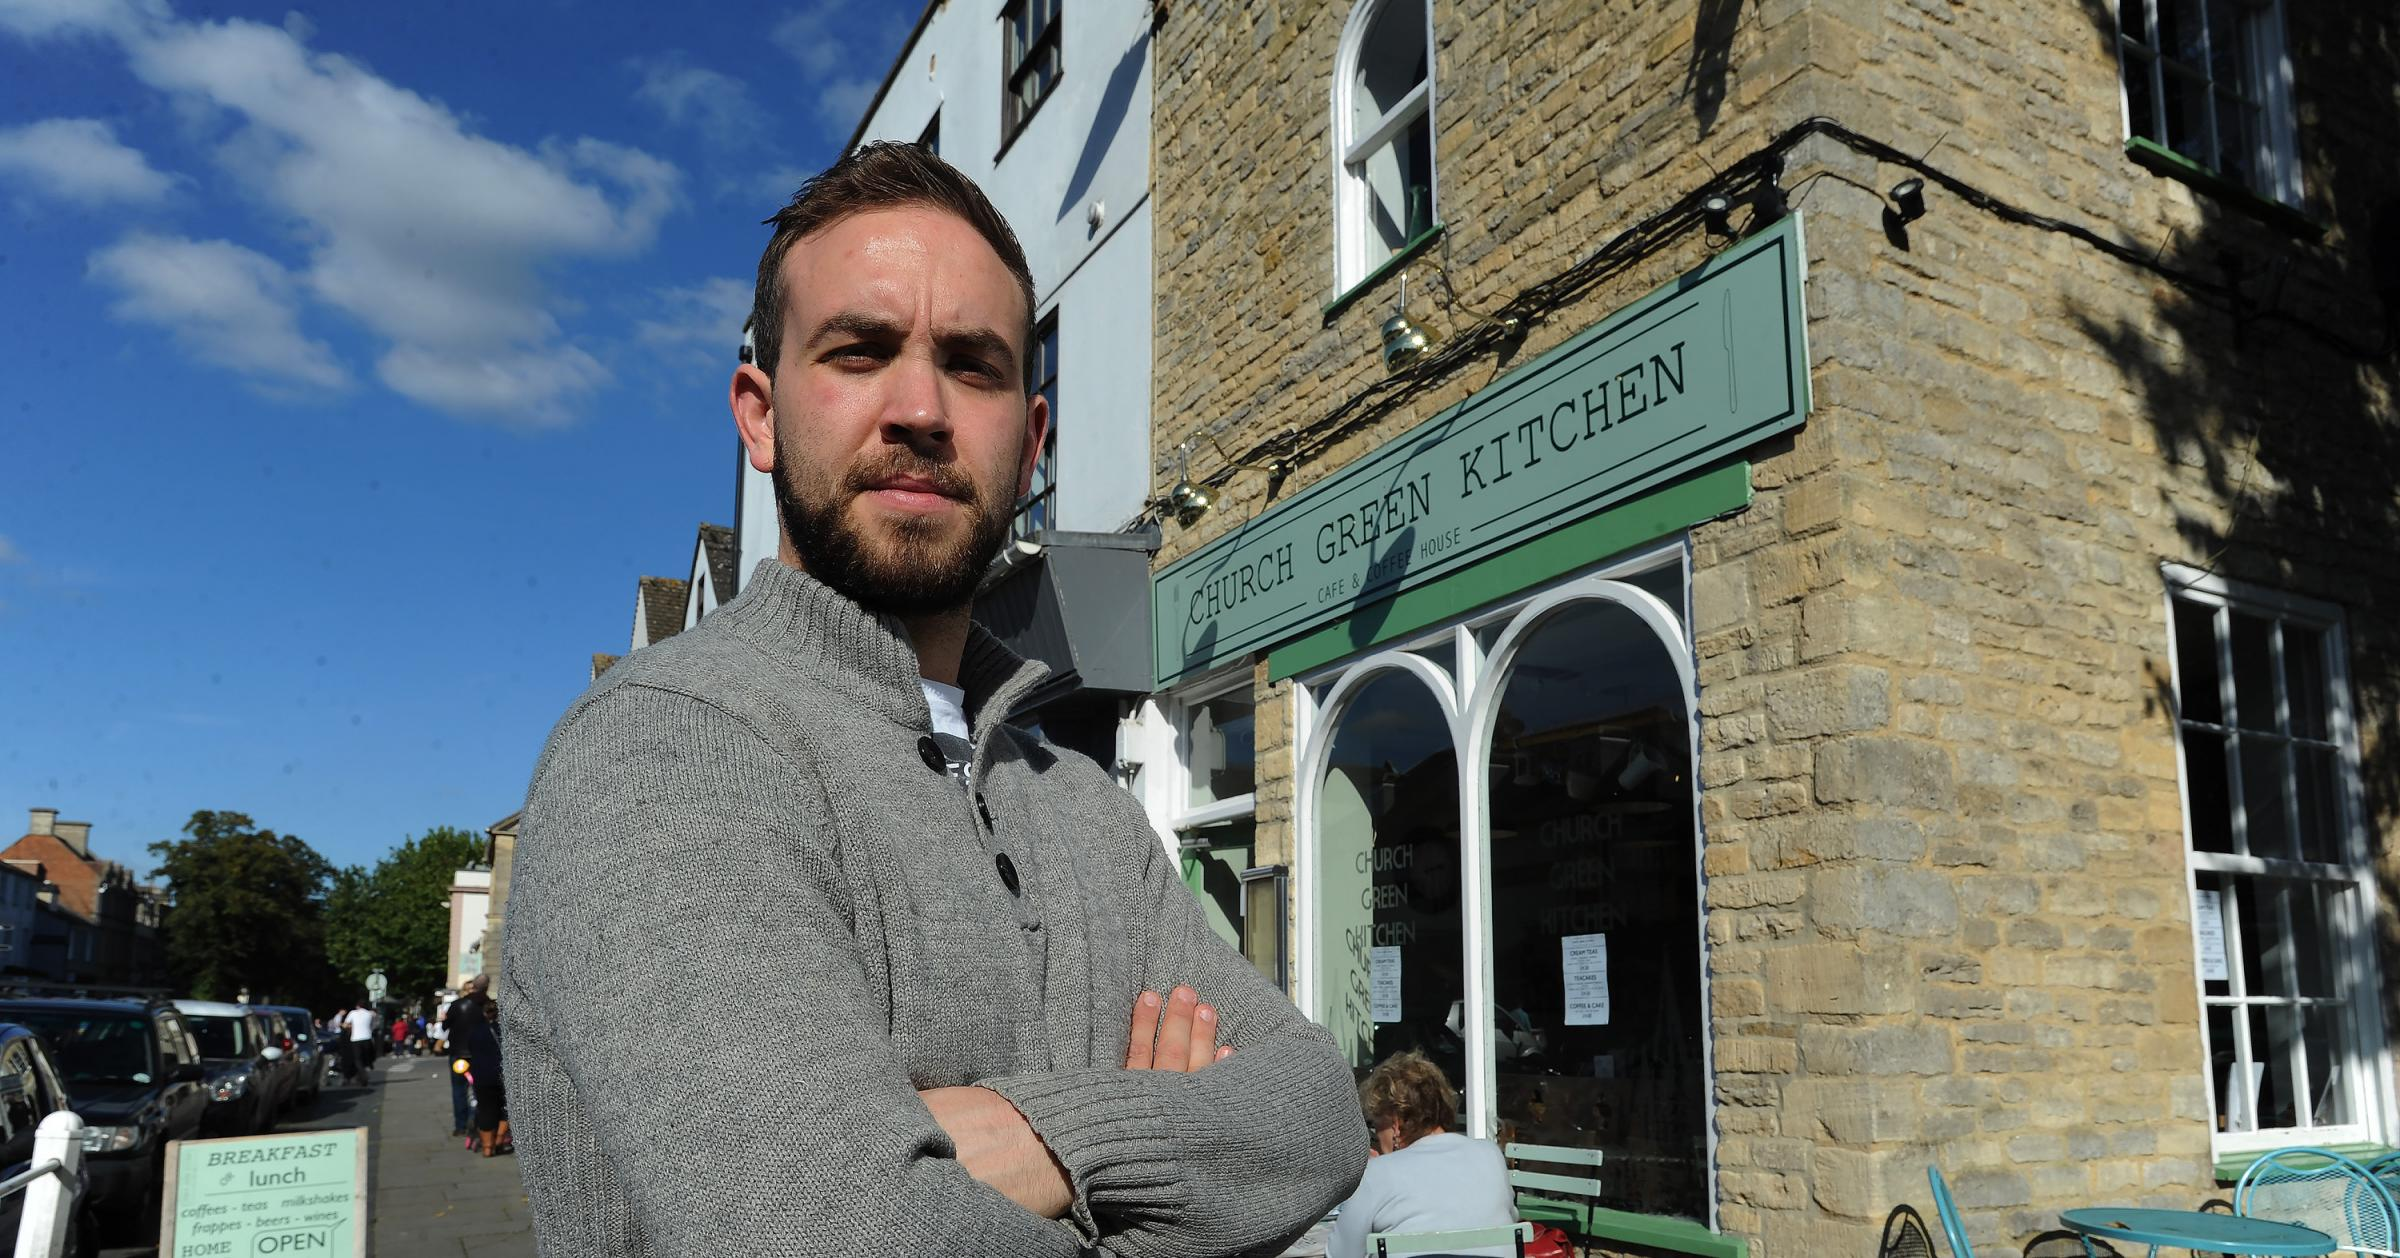 The Church Green Kitchen has been burgled again. Pictured is manager Andrew Brewer. Picture by Jon Lewis